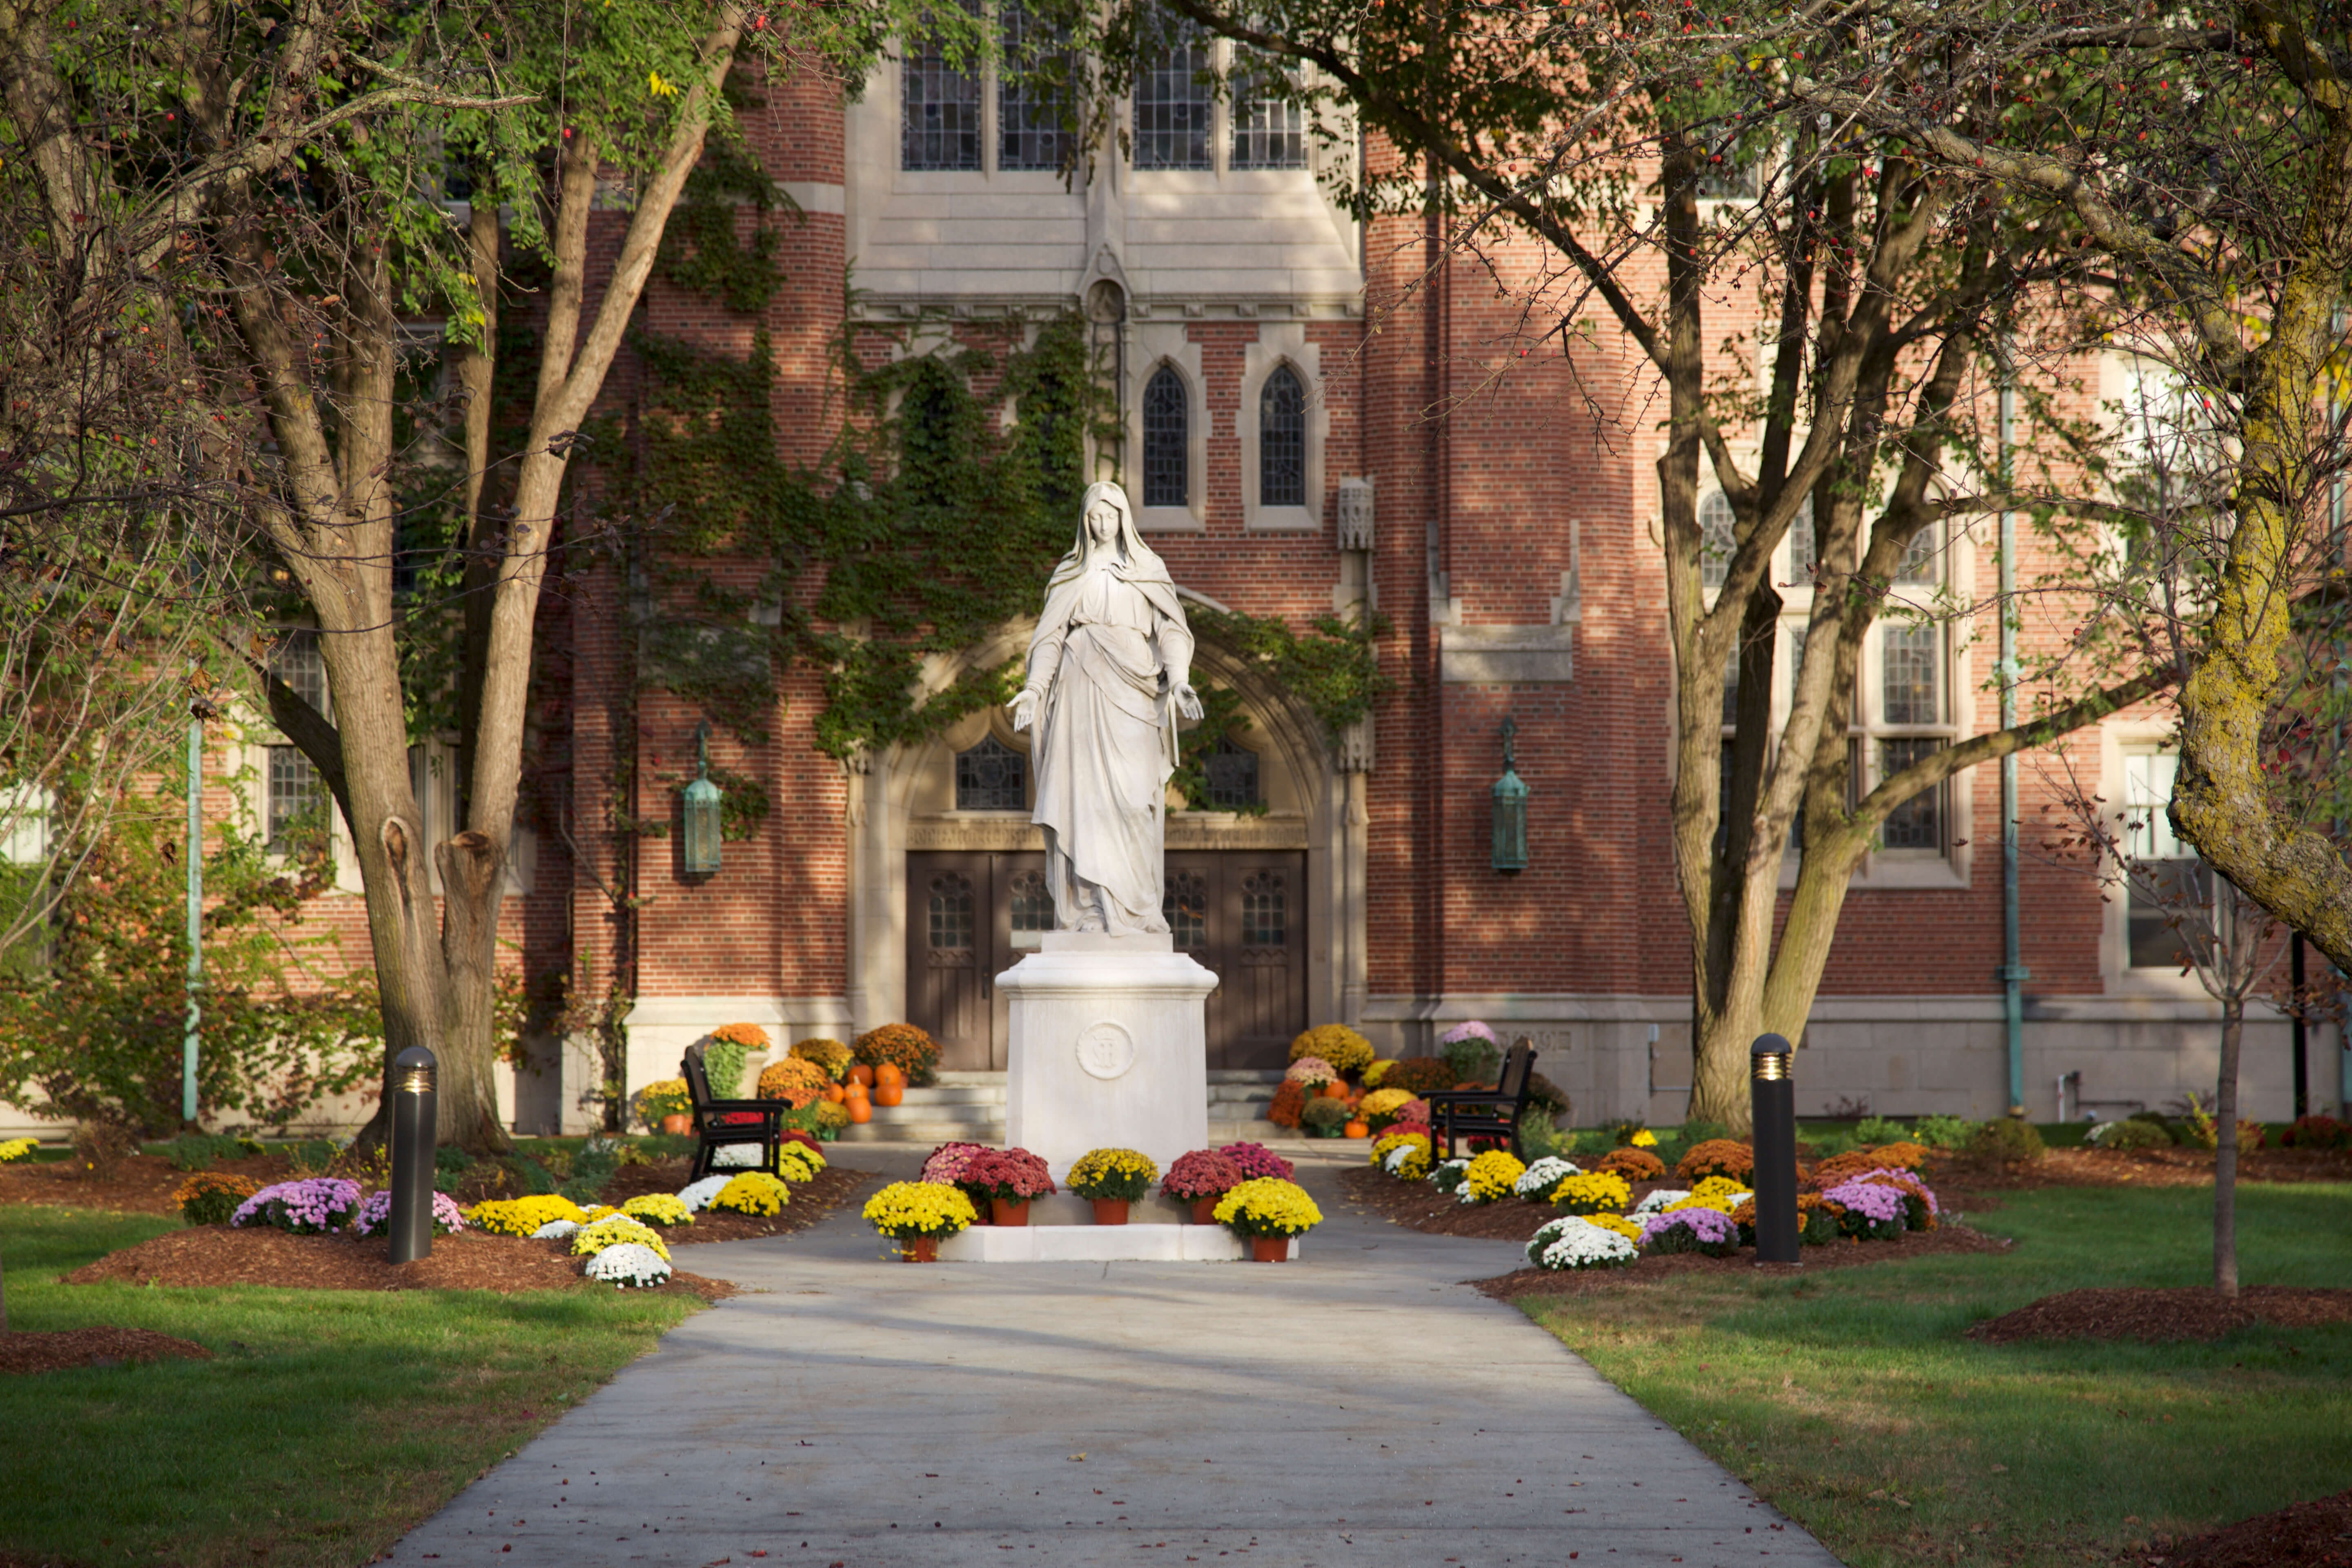 Statue of Mary in front of Berchmans Hall